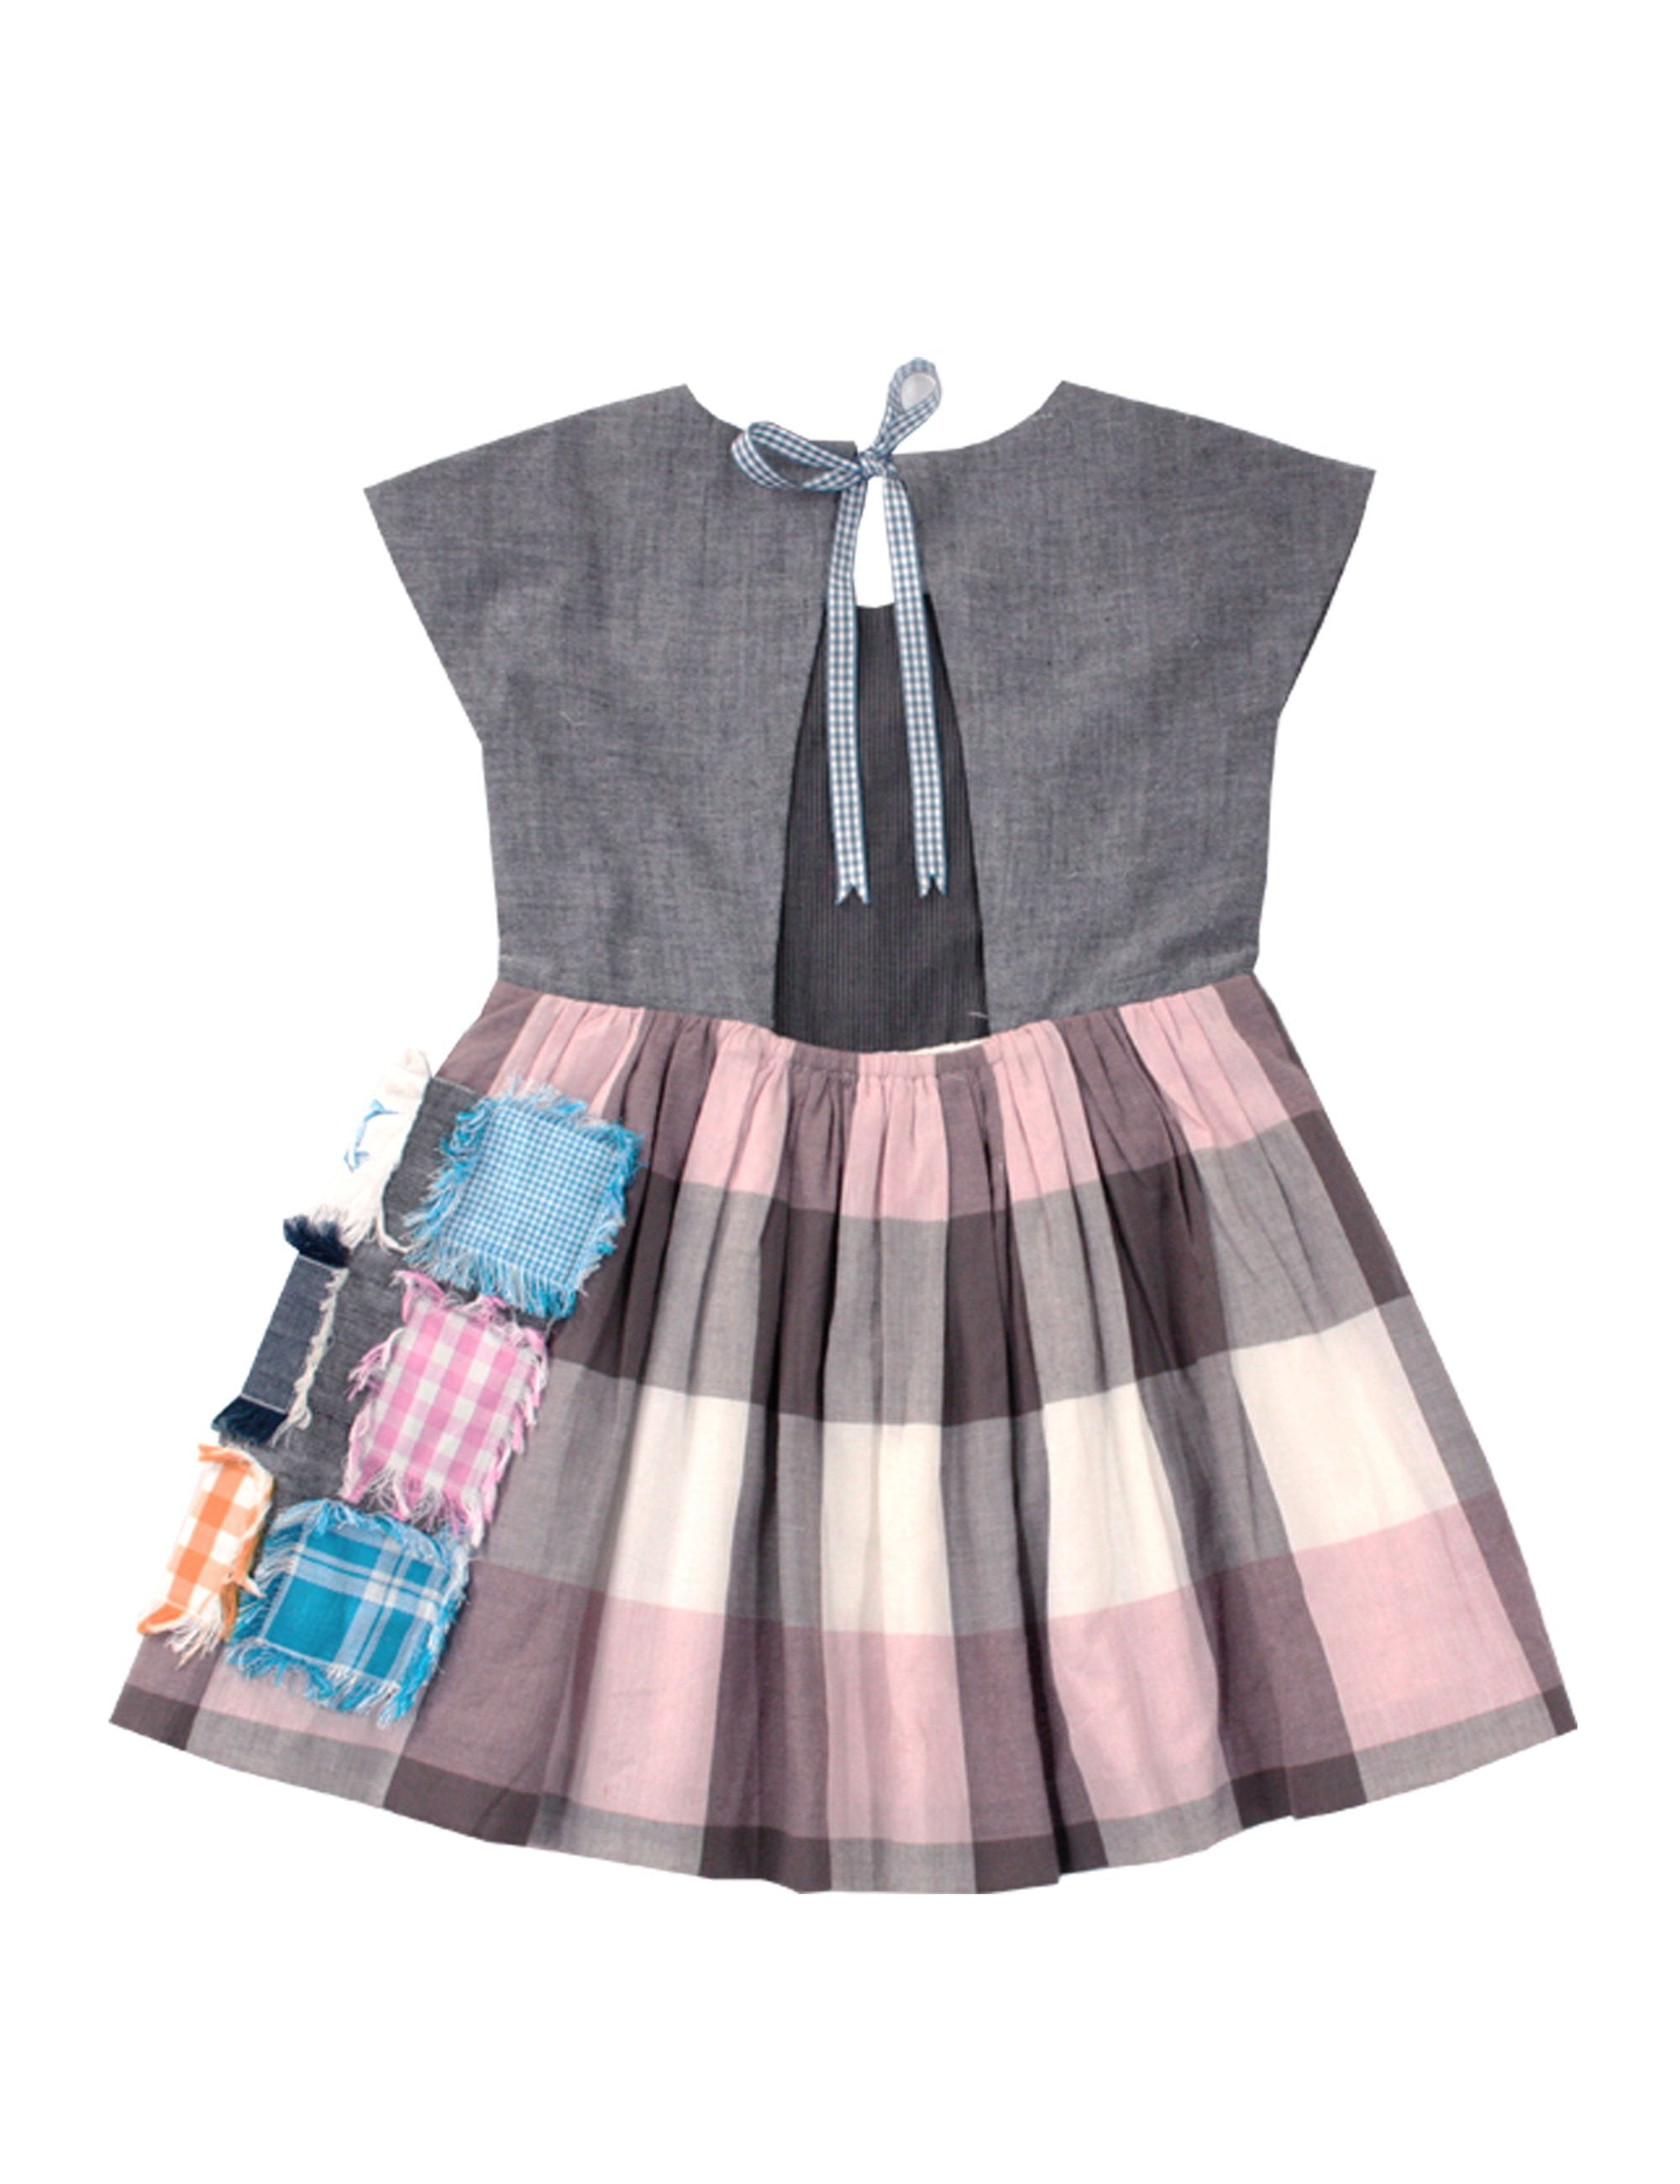 Cotton Casual Dress in Grey Colour for Girls